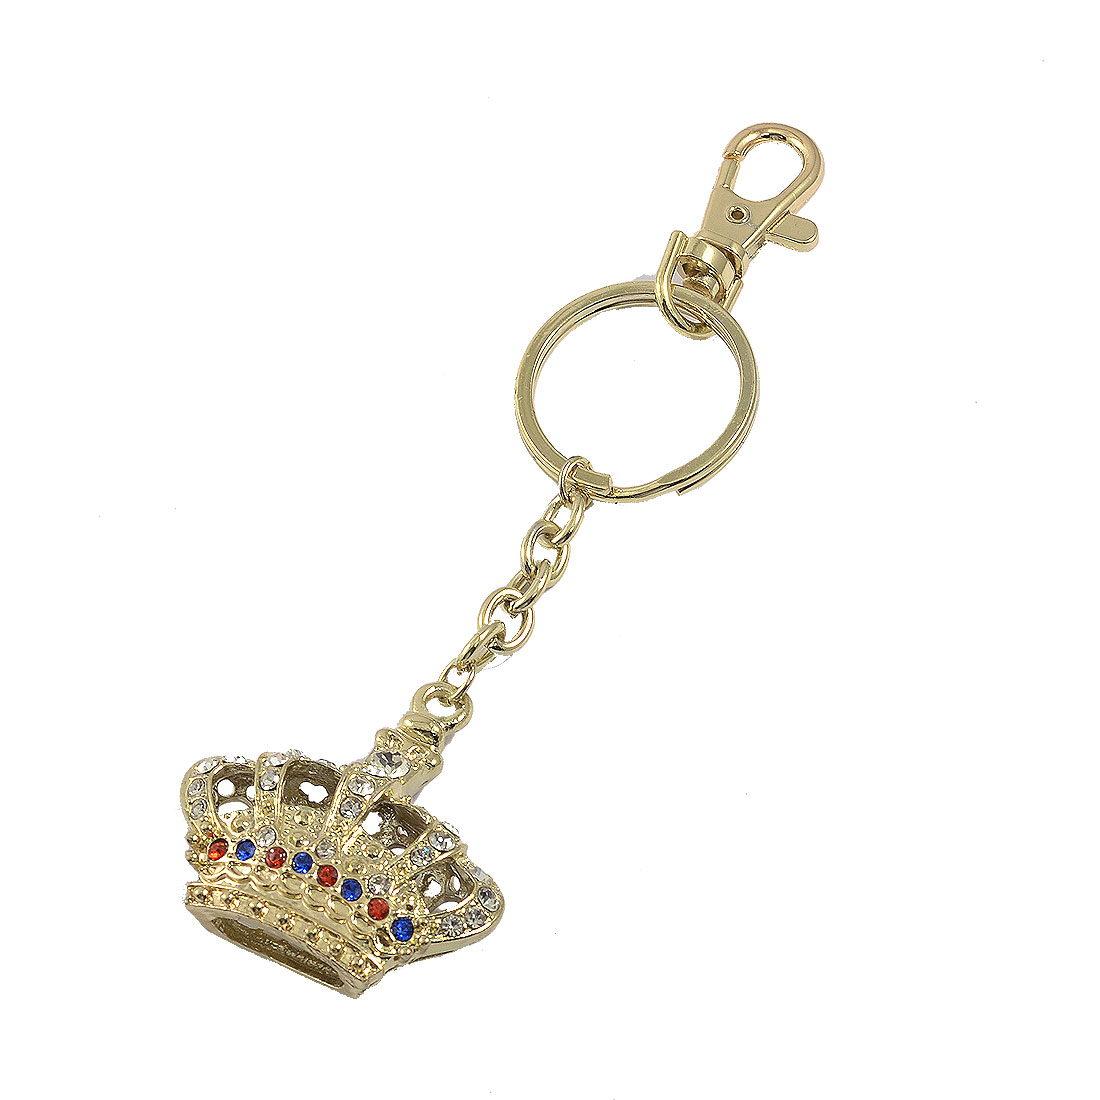 Faux Crystal Inlaid Crown Pendant Lobster Clasp Keyring Gold Tone